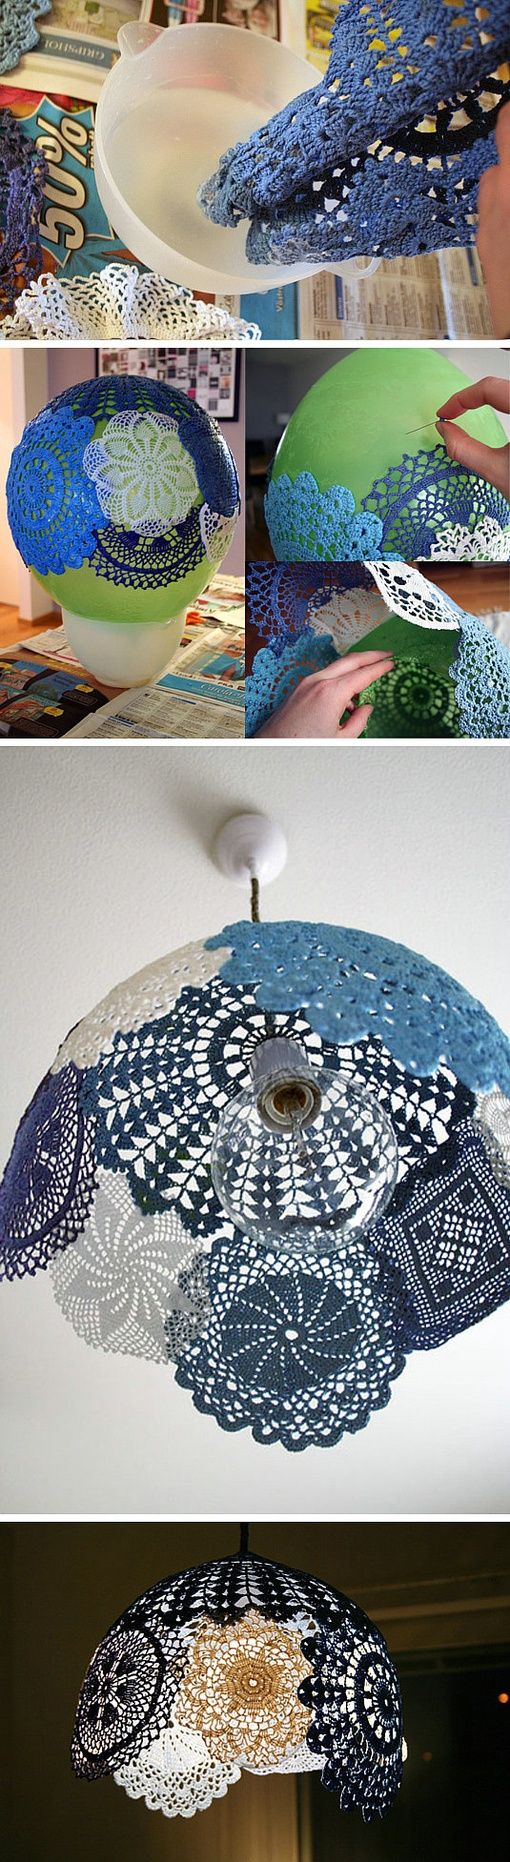 Cool DIY lampshade idea.